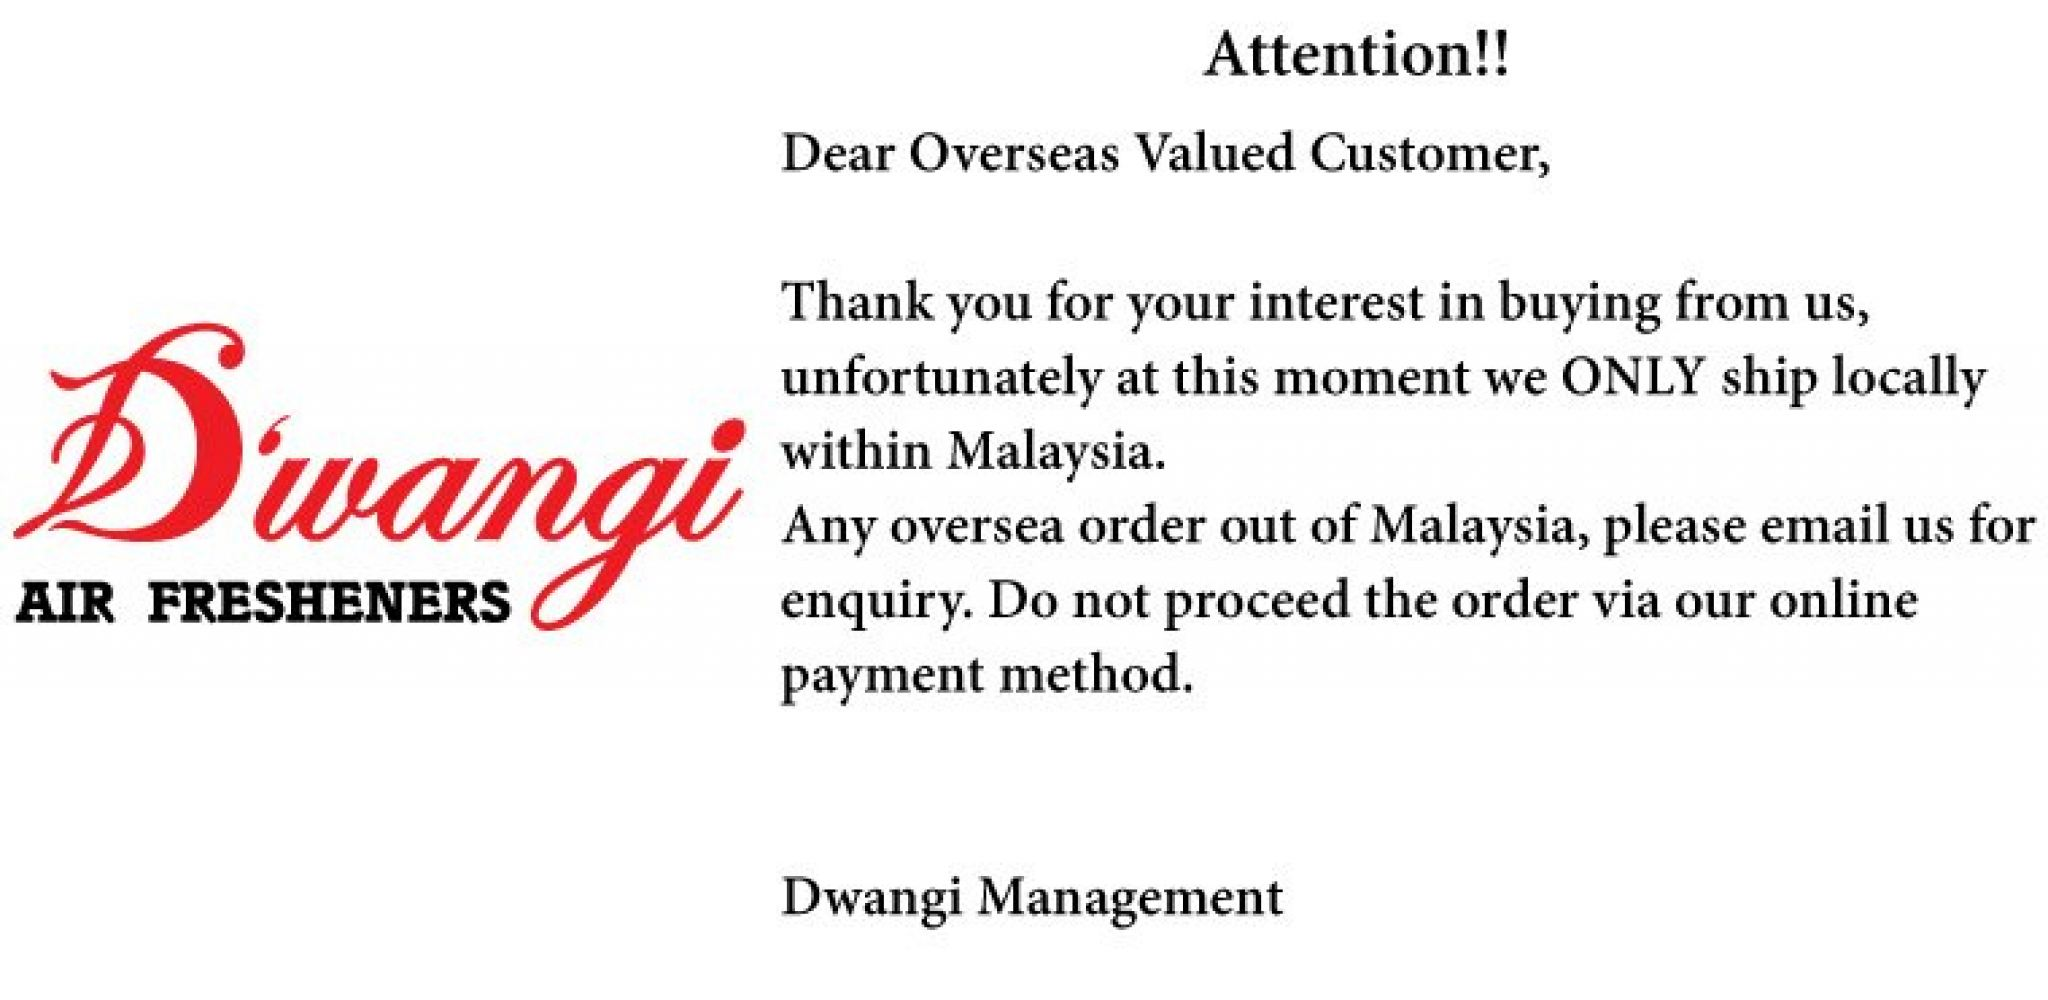 We ONLY ship locally within Malaysia!